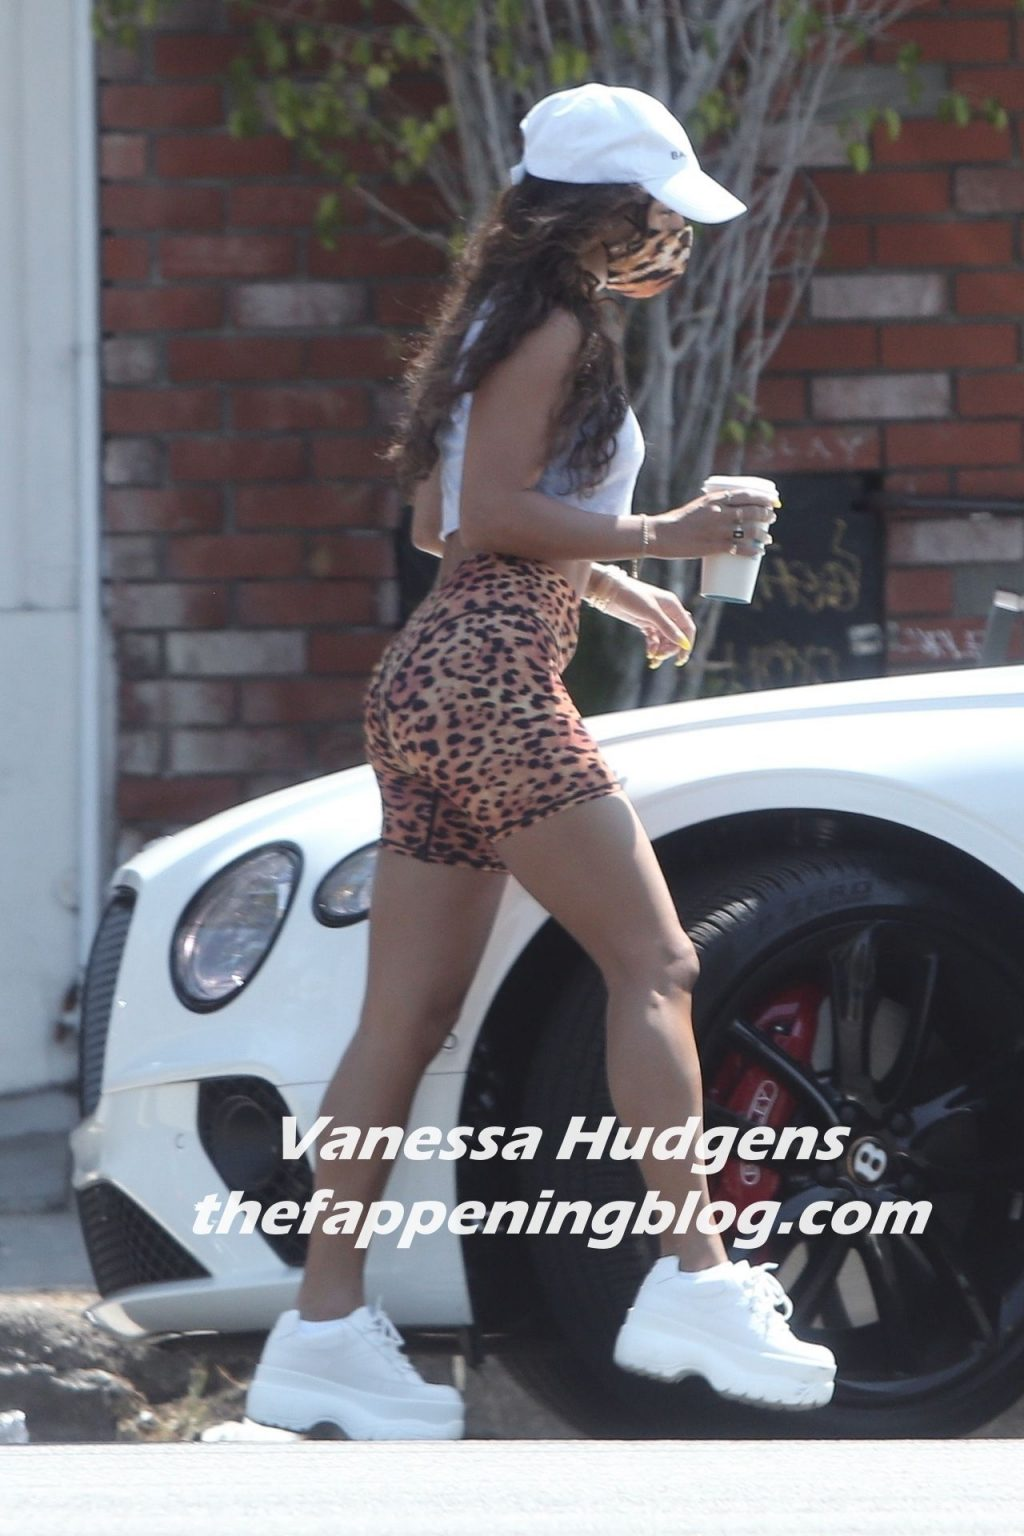 Vanessa Hudgens Shows Off Her Sexy Booty in Shorts While Picking Up Lunch (16 Photos)